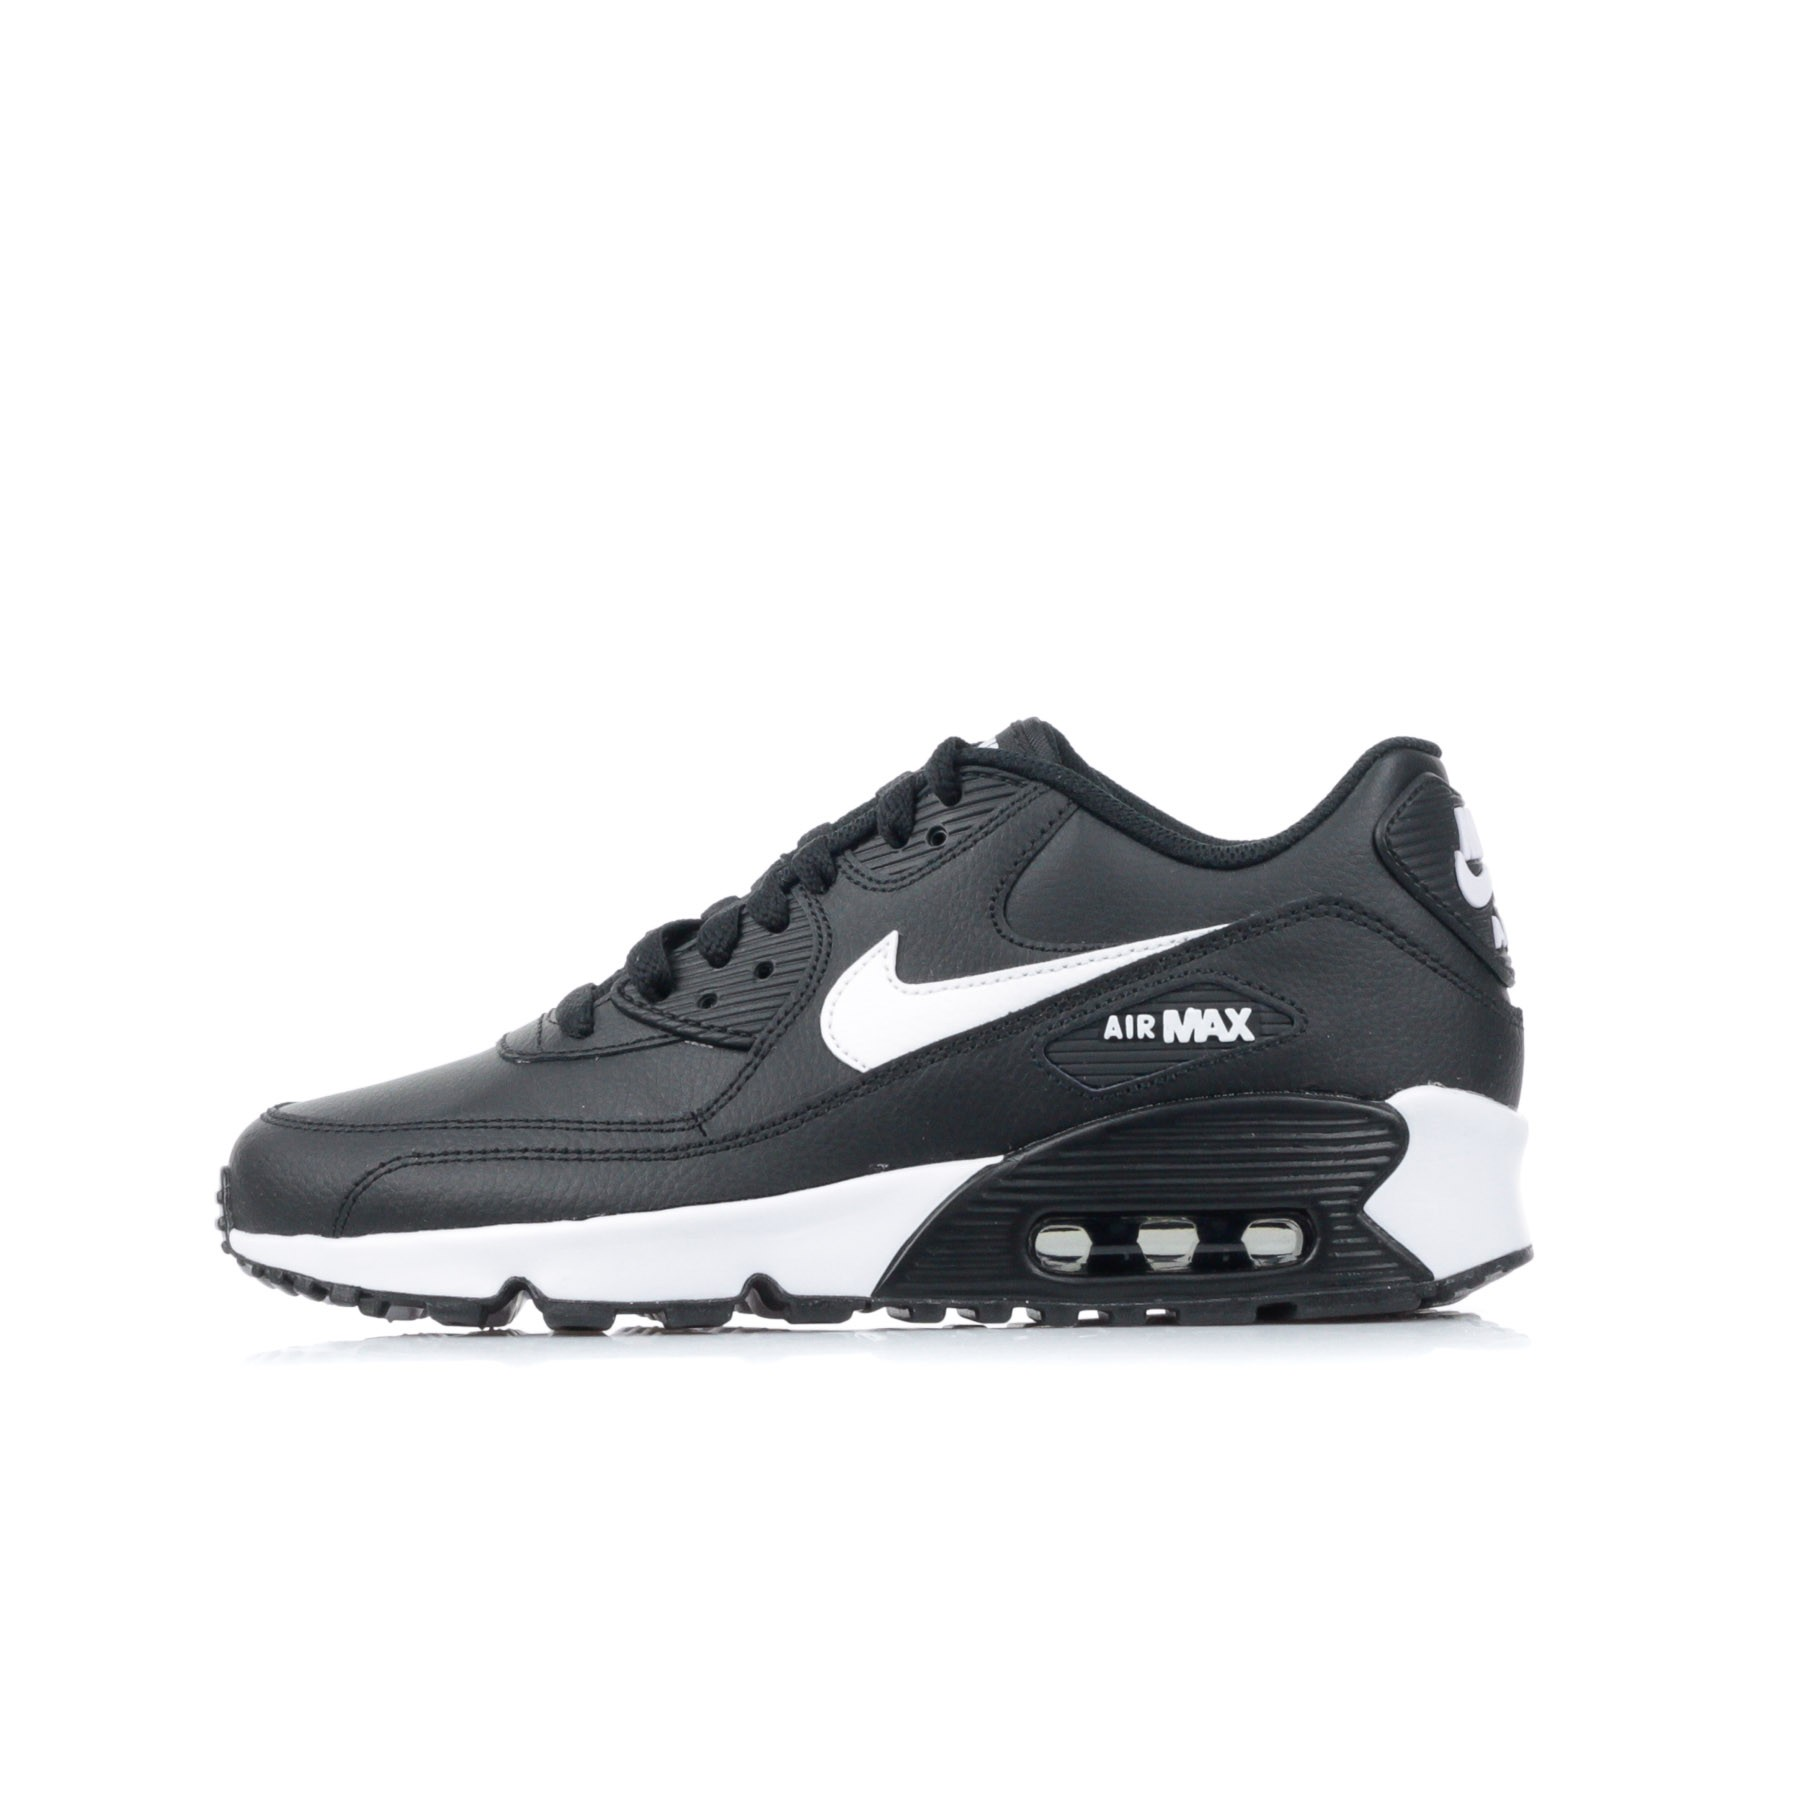 Nike Air Max 90 Leather, Women's Low Top Sneakers